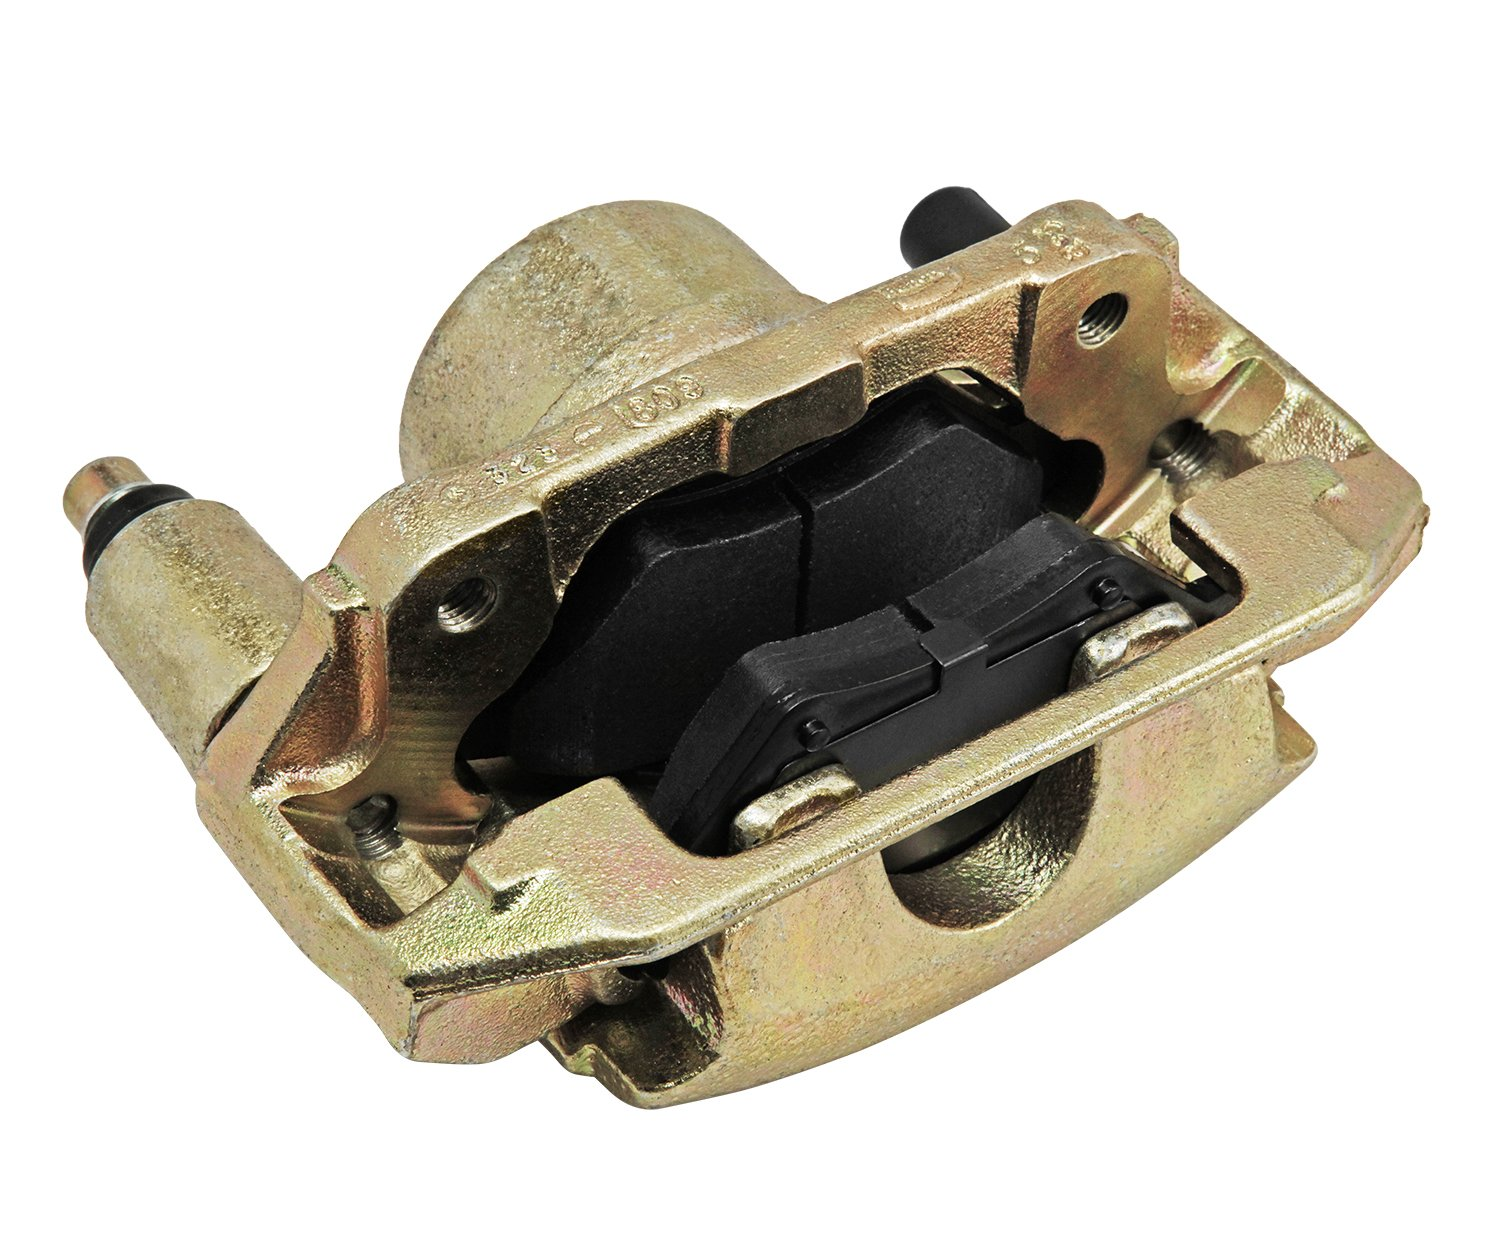 R1 Concepts A42.752215 Premier Series Brake Caliper With Brake Pads concepts